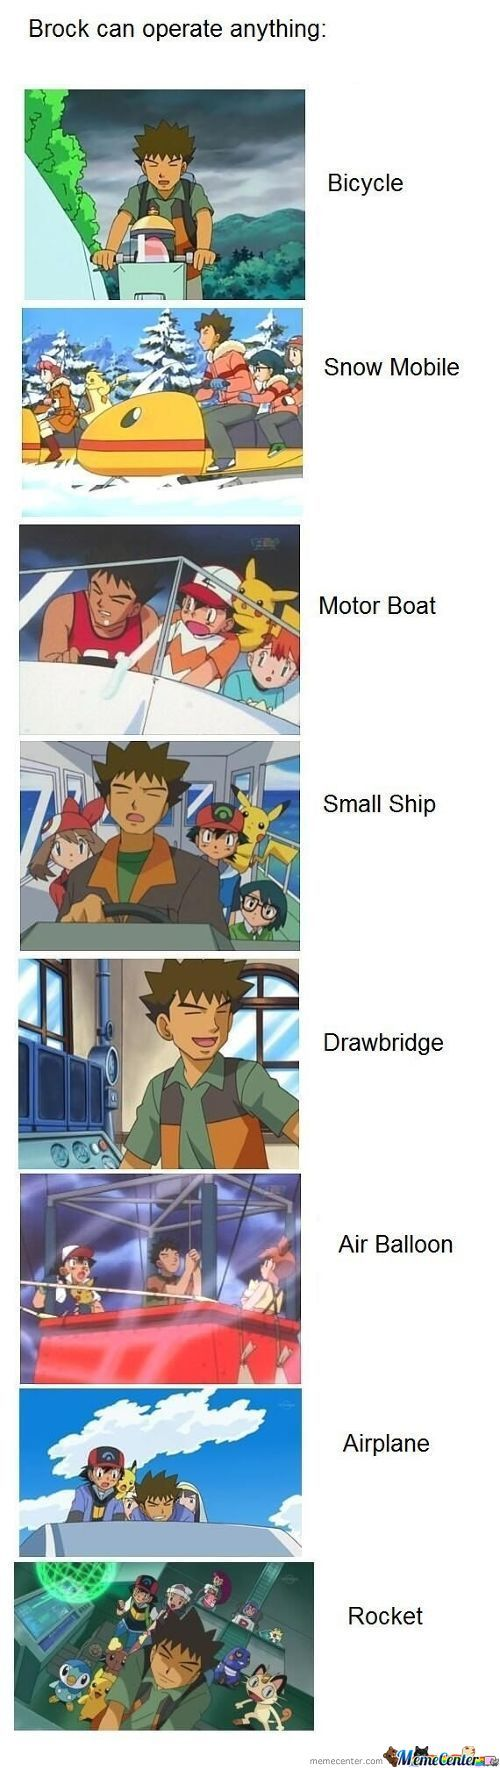 Brock Can Operate Anything...except Women